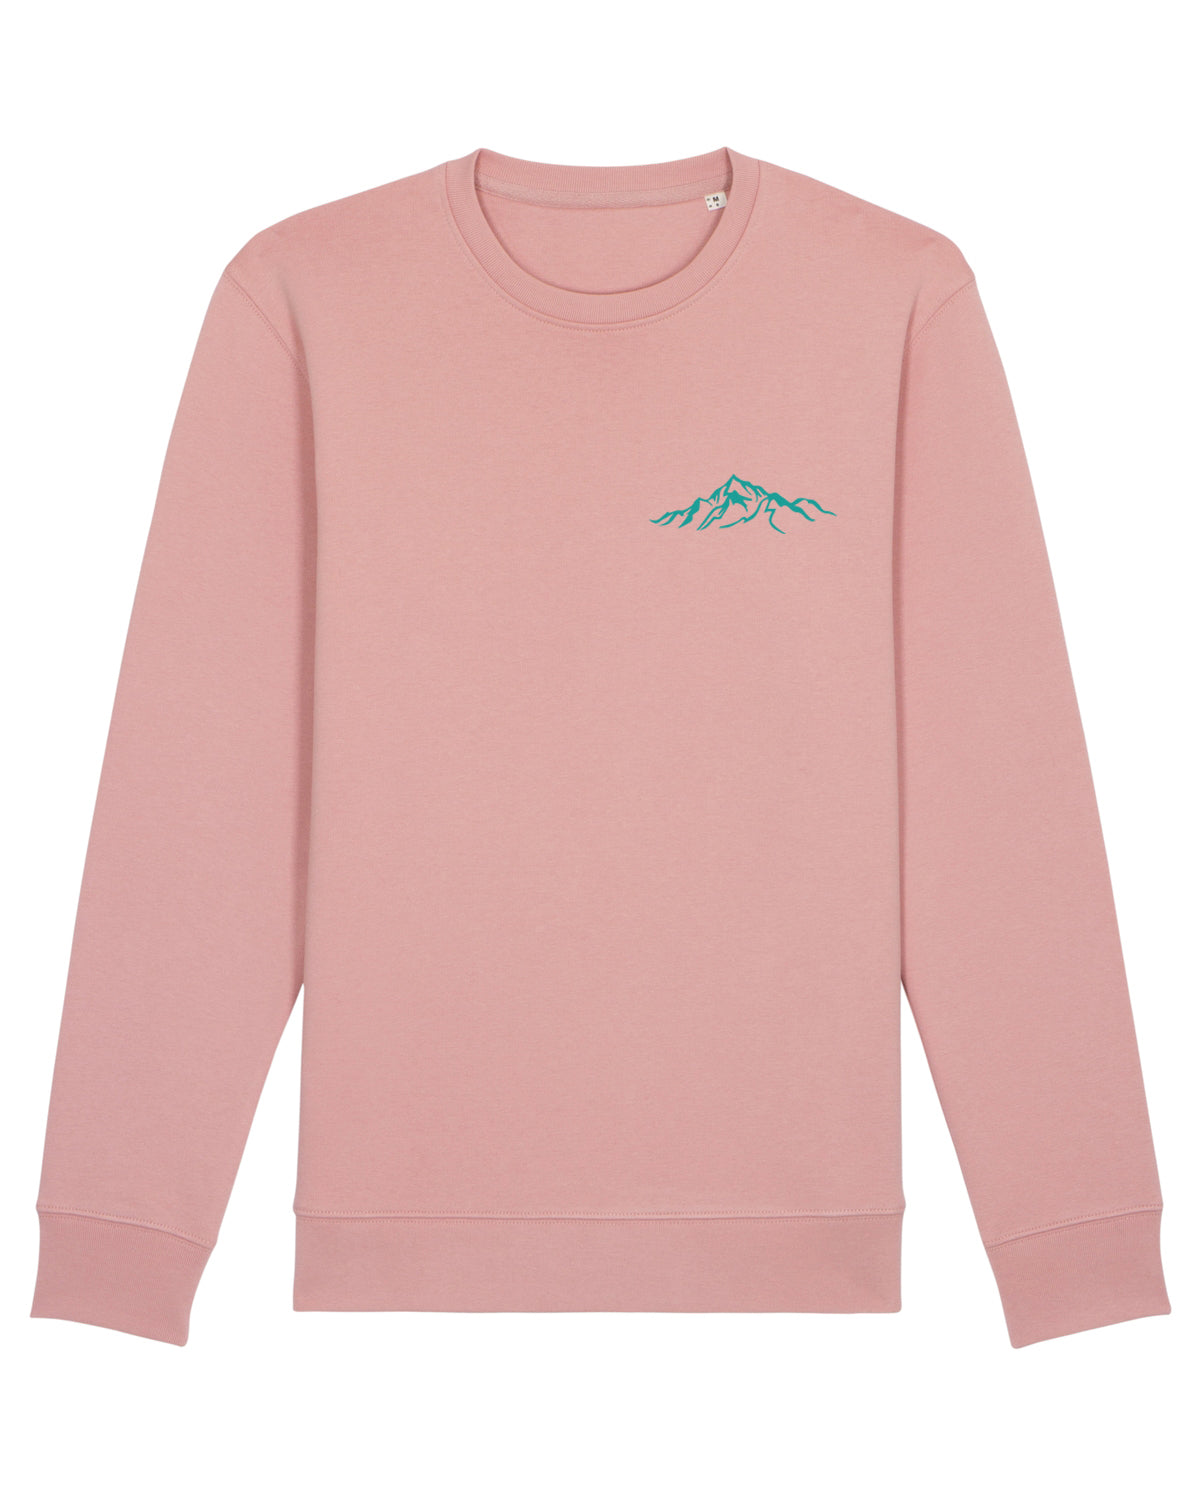 Unisex Ethical Sweatshirt